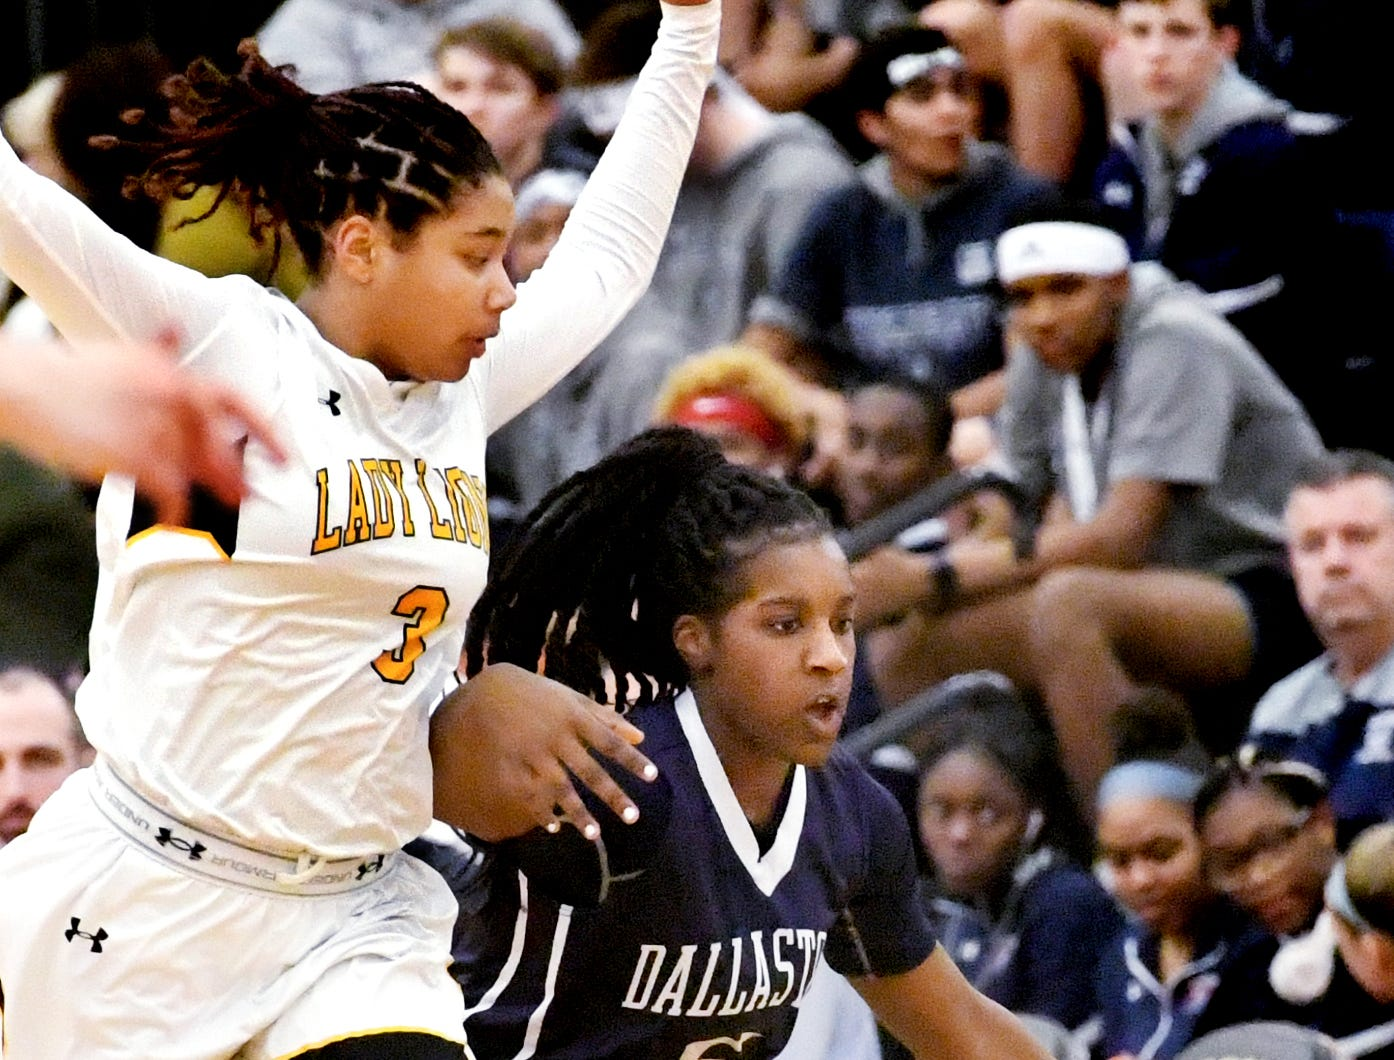 Dallastown's D'Shantae Edwards drives with pressure from Red LIon's Asia Eames during basketball action at Red Lion Tuesday, Feb. 5, 2019. Bill Kalina photo